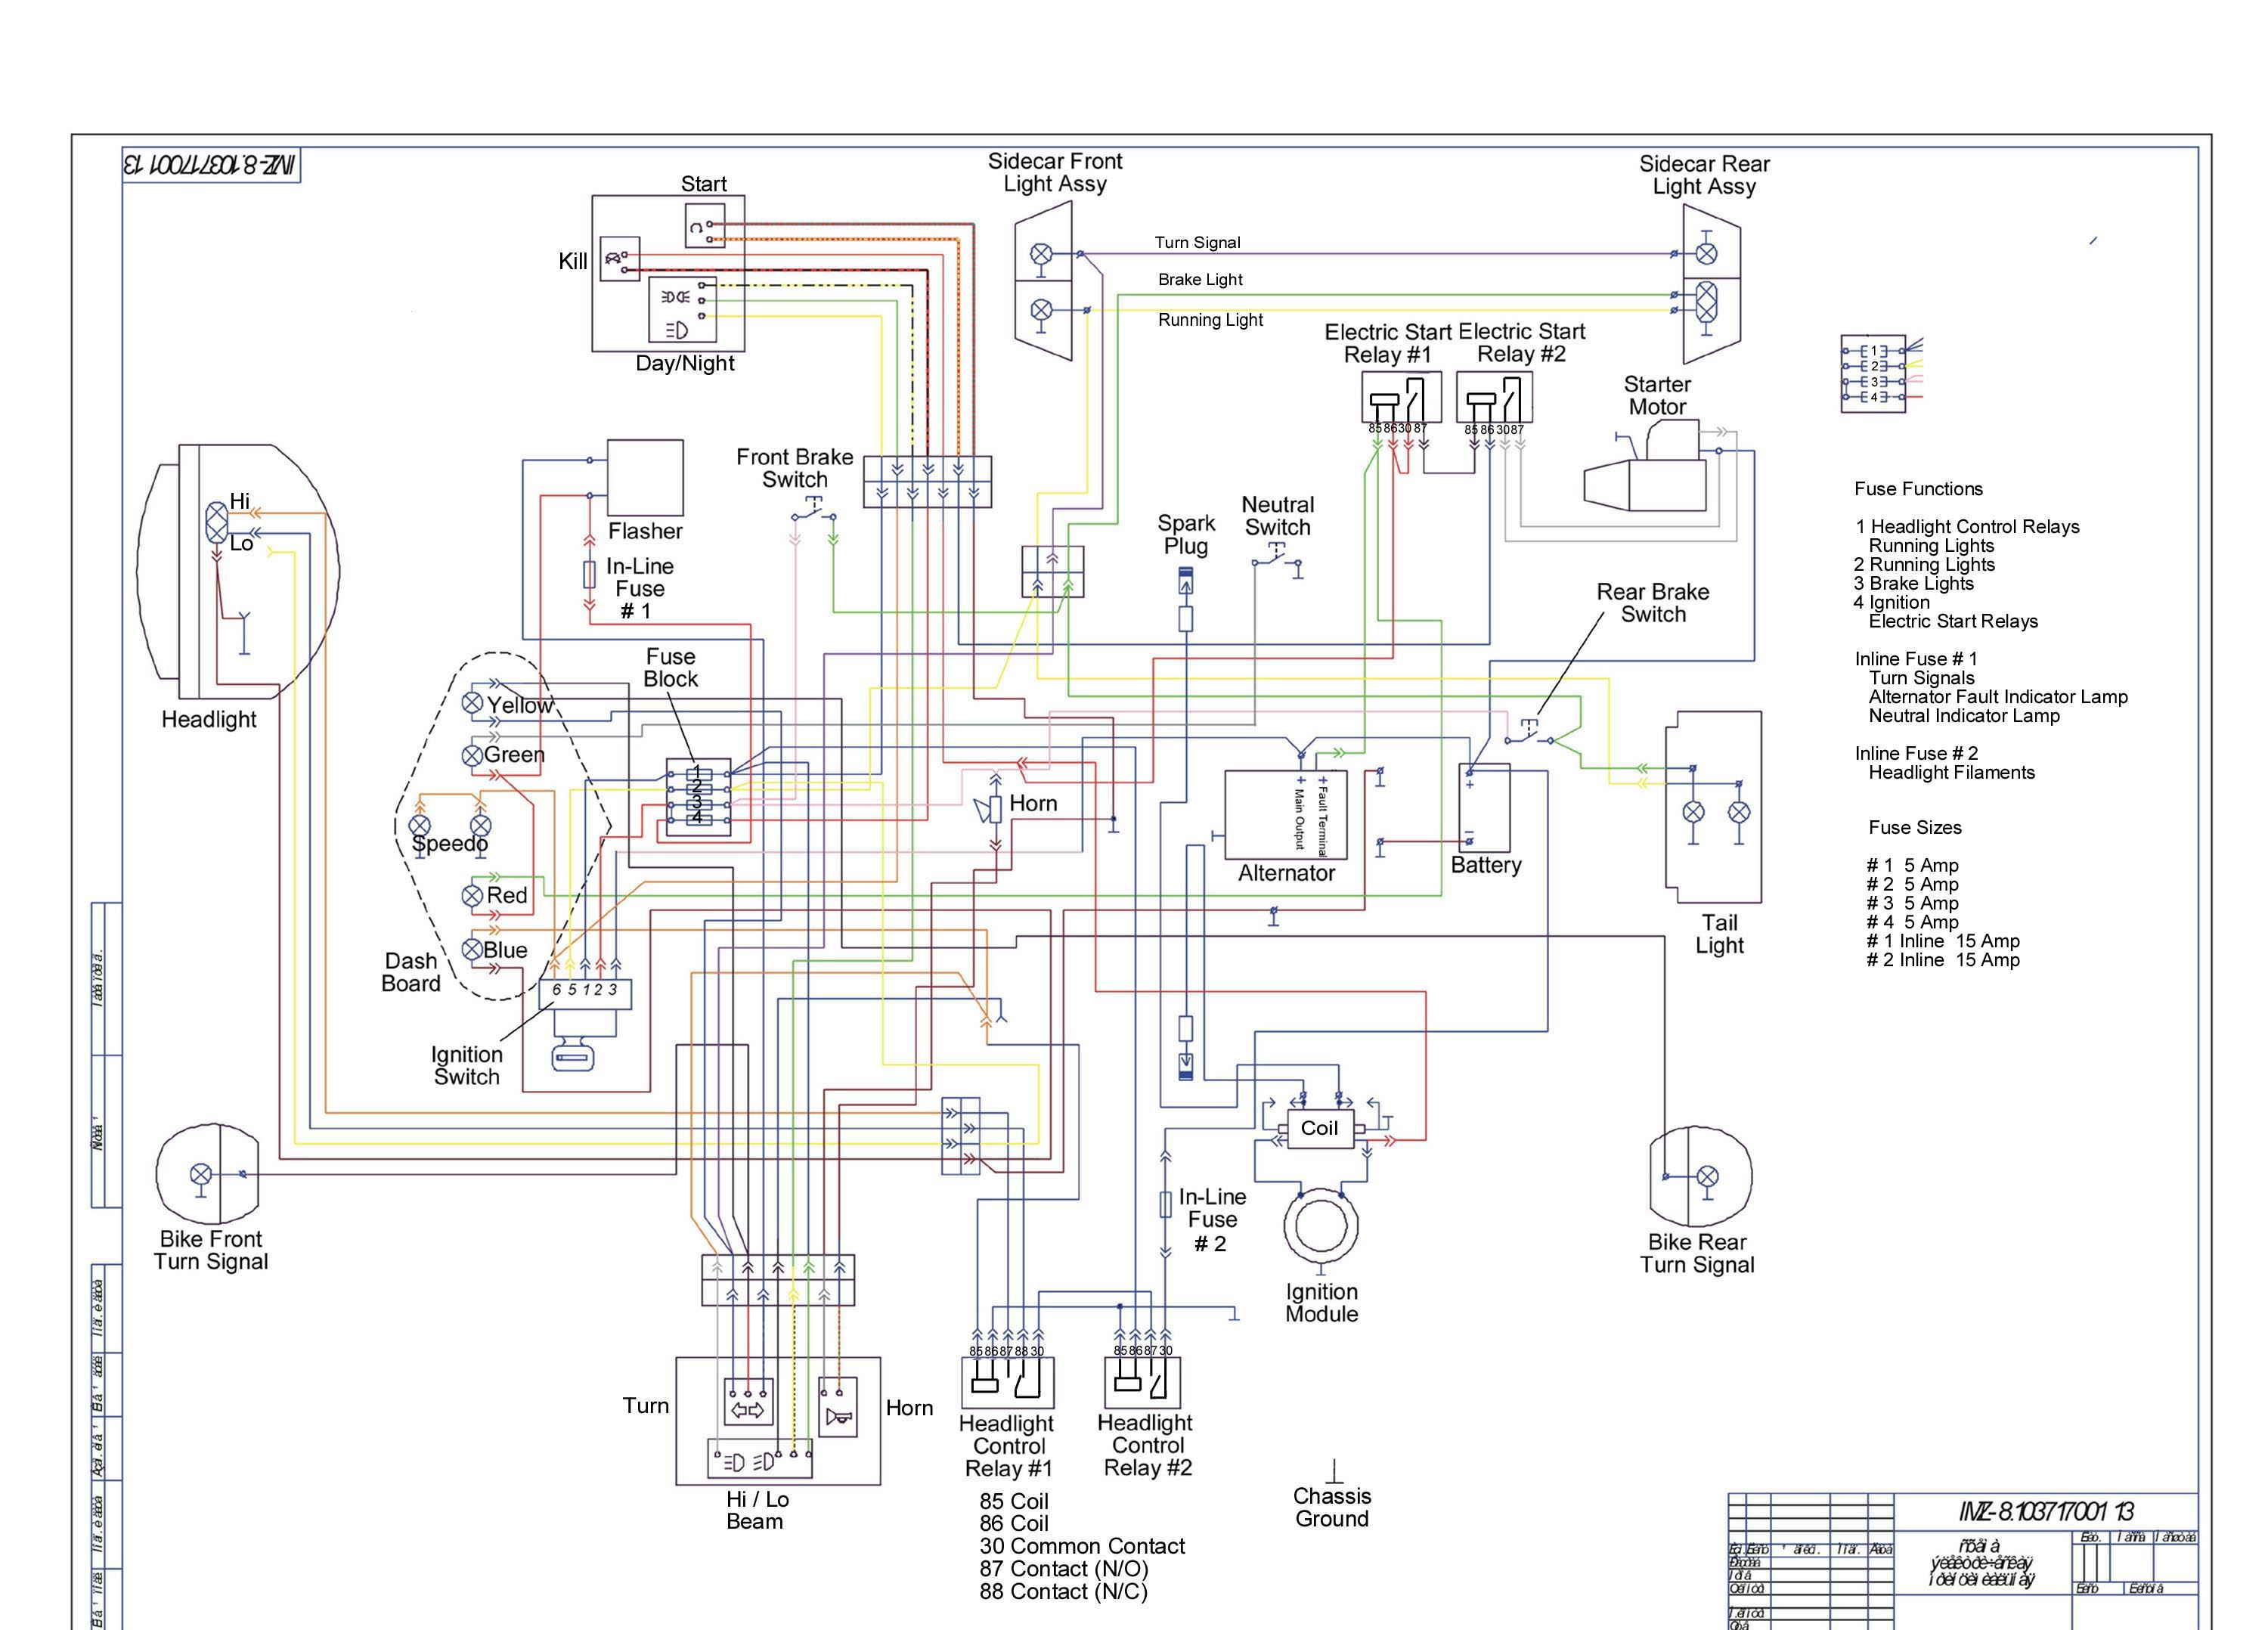 750 Wiring Schematic?resize\\\\\\\\\\\\\\\\\\\\\\\\\\\\\\\\\\\\\\\\\\\\\\\\\\\\\\\\\\\\\\\\\\\\\\\\\\\\\\\\\\\\\\\\\\\\\\\\\\\\\\\\\\\\\\\\\\\\\\\\=665%2C478 100 [ wiring diagram mazda 2 ] remote starter bypass module,ms3 kk2 1 5 wiring diagram at honlapkeszites.co